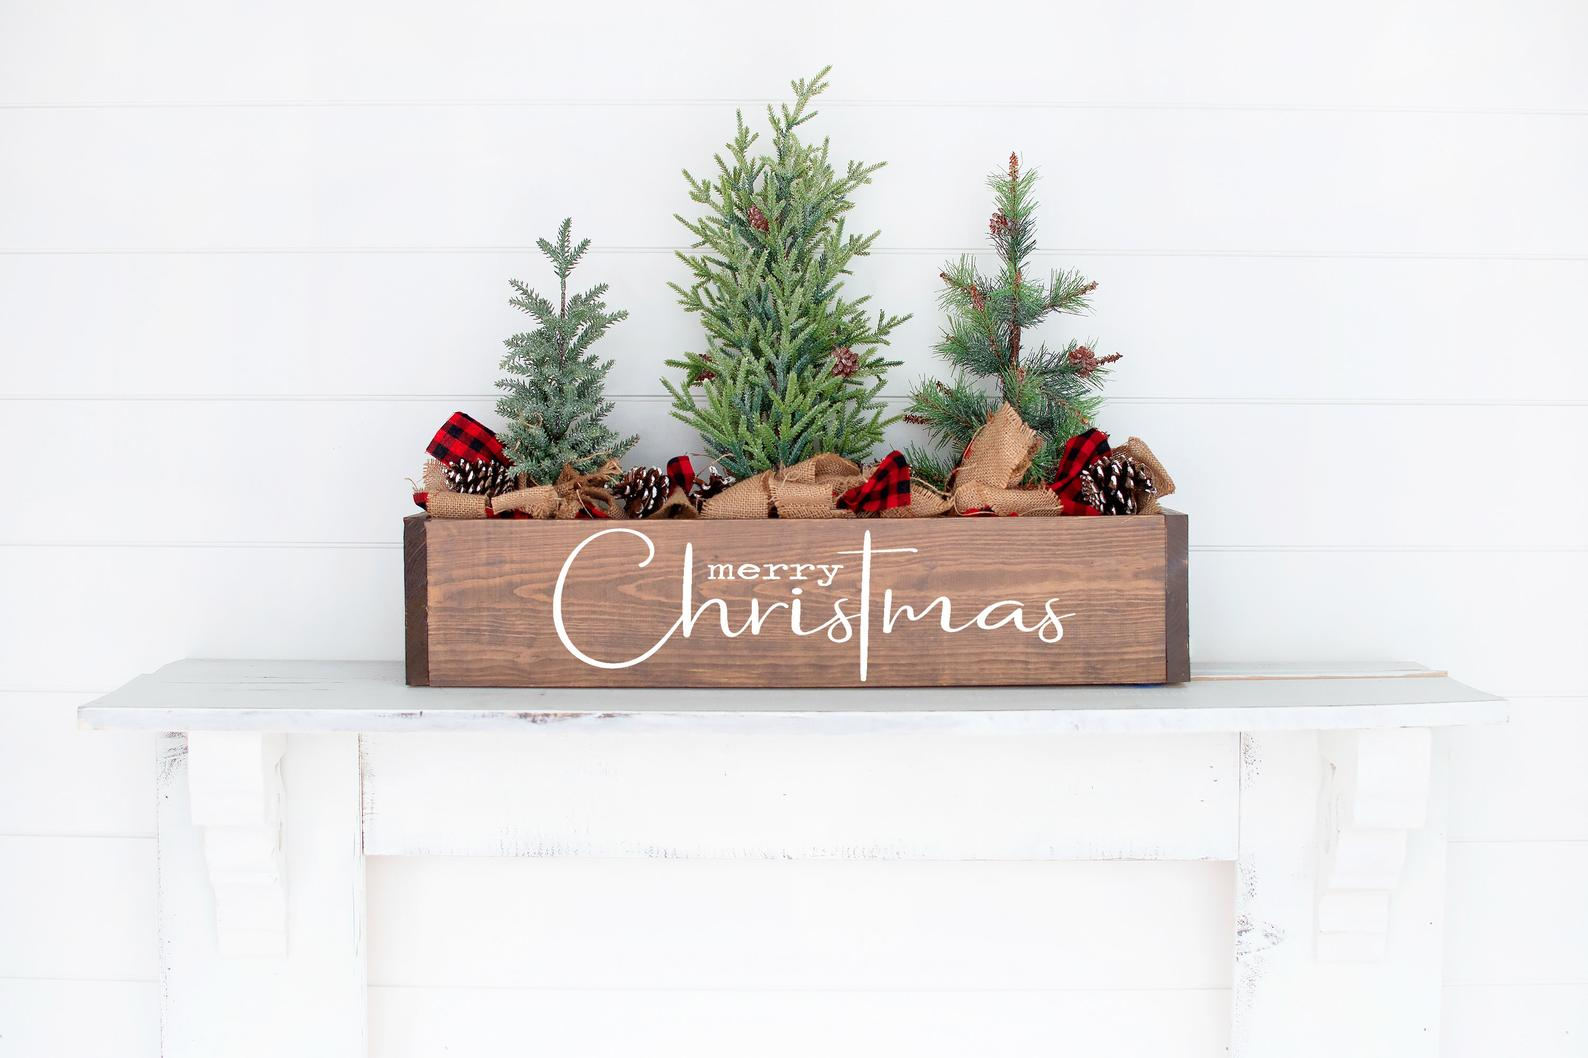 Merry Christmas Planter Box